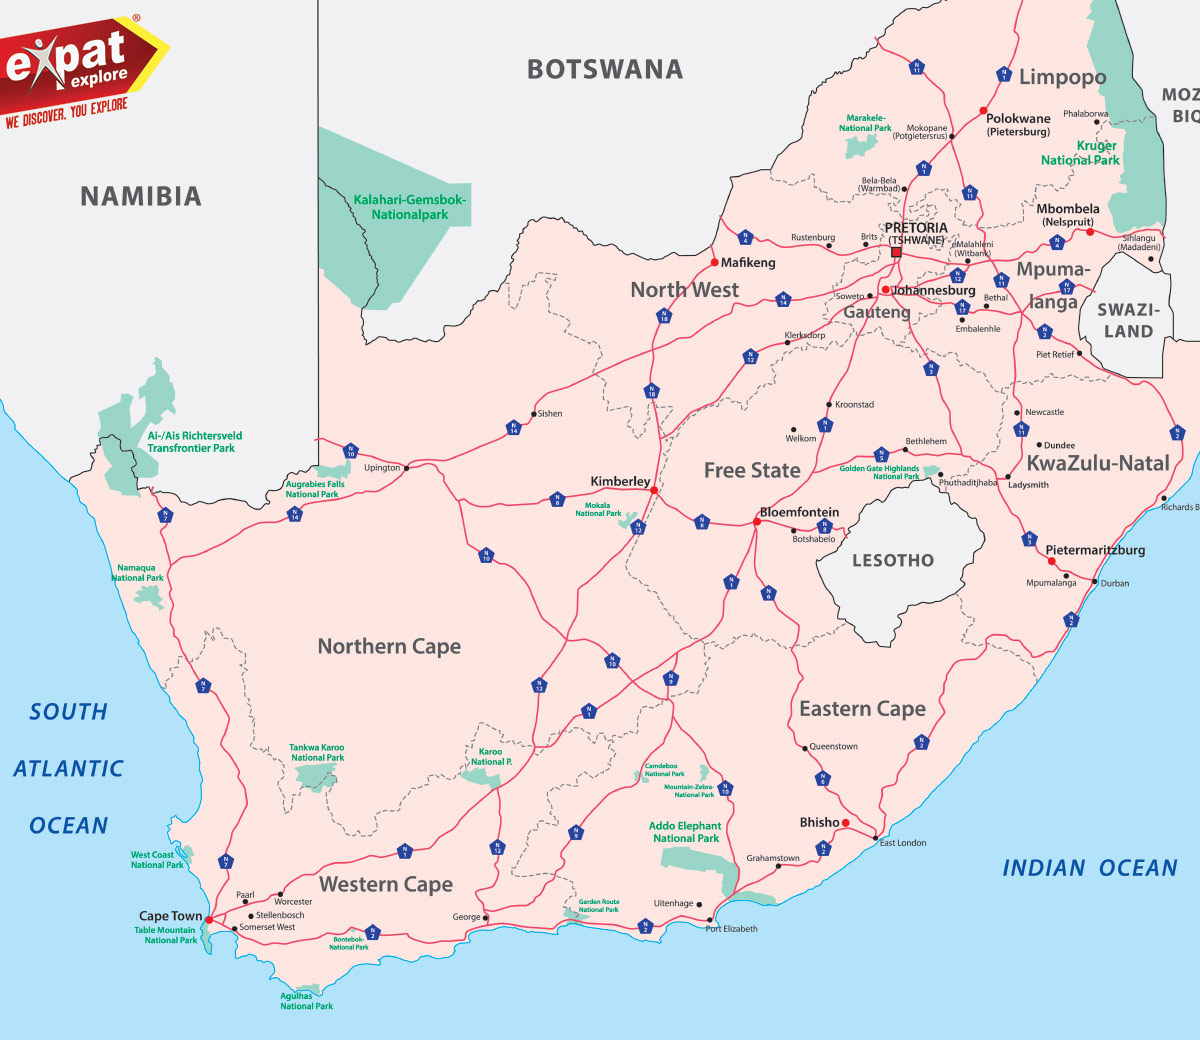 Map Of South Africa Showing 9 Provinces.A Quick Guide To South Africa Expat Explore Travel